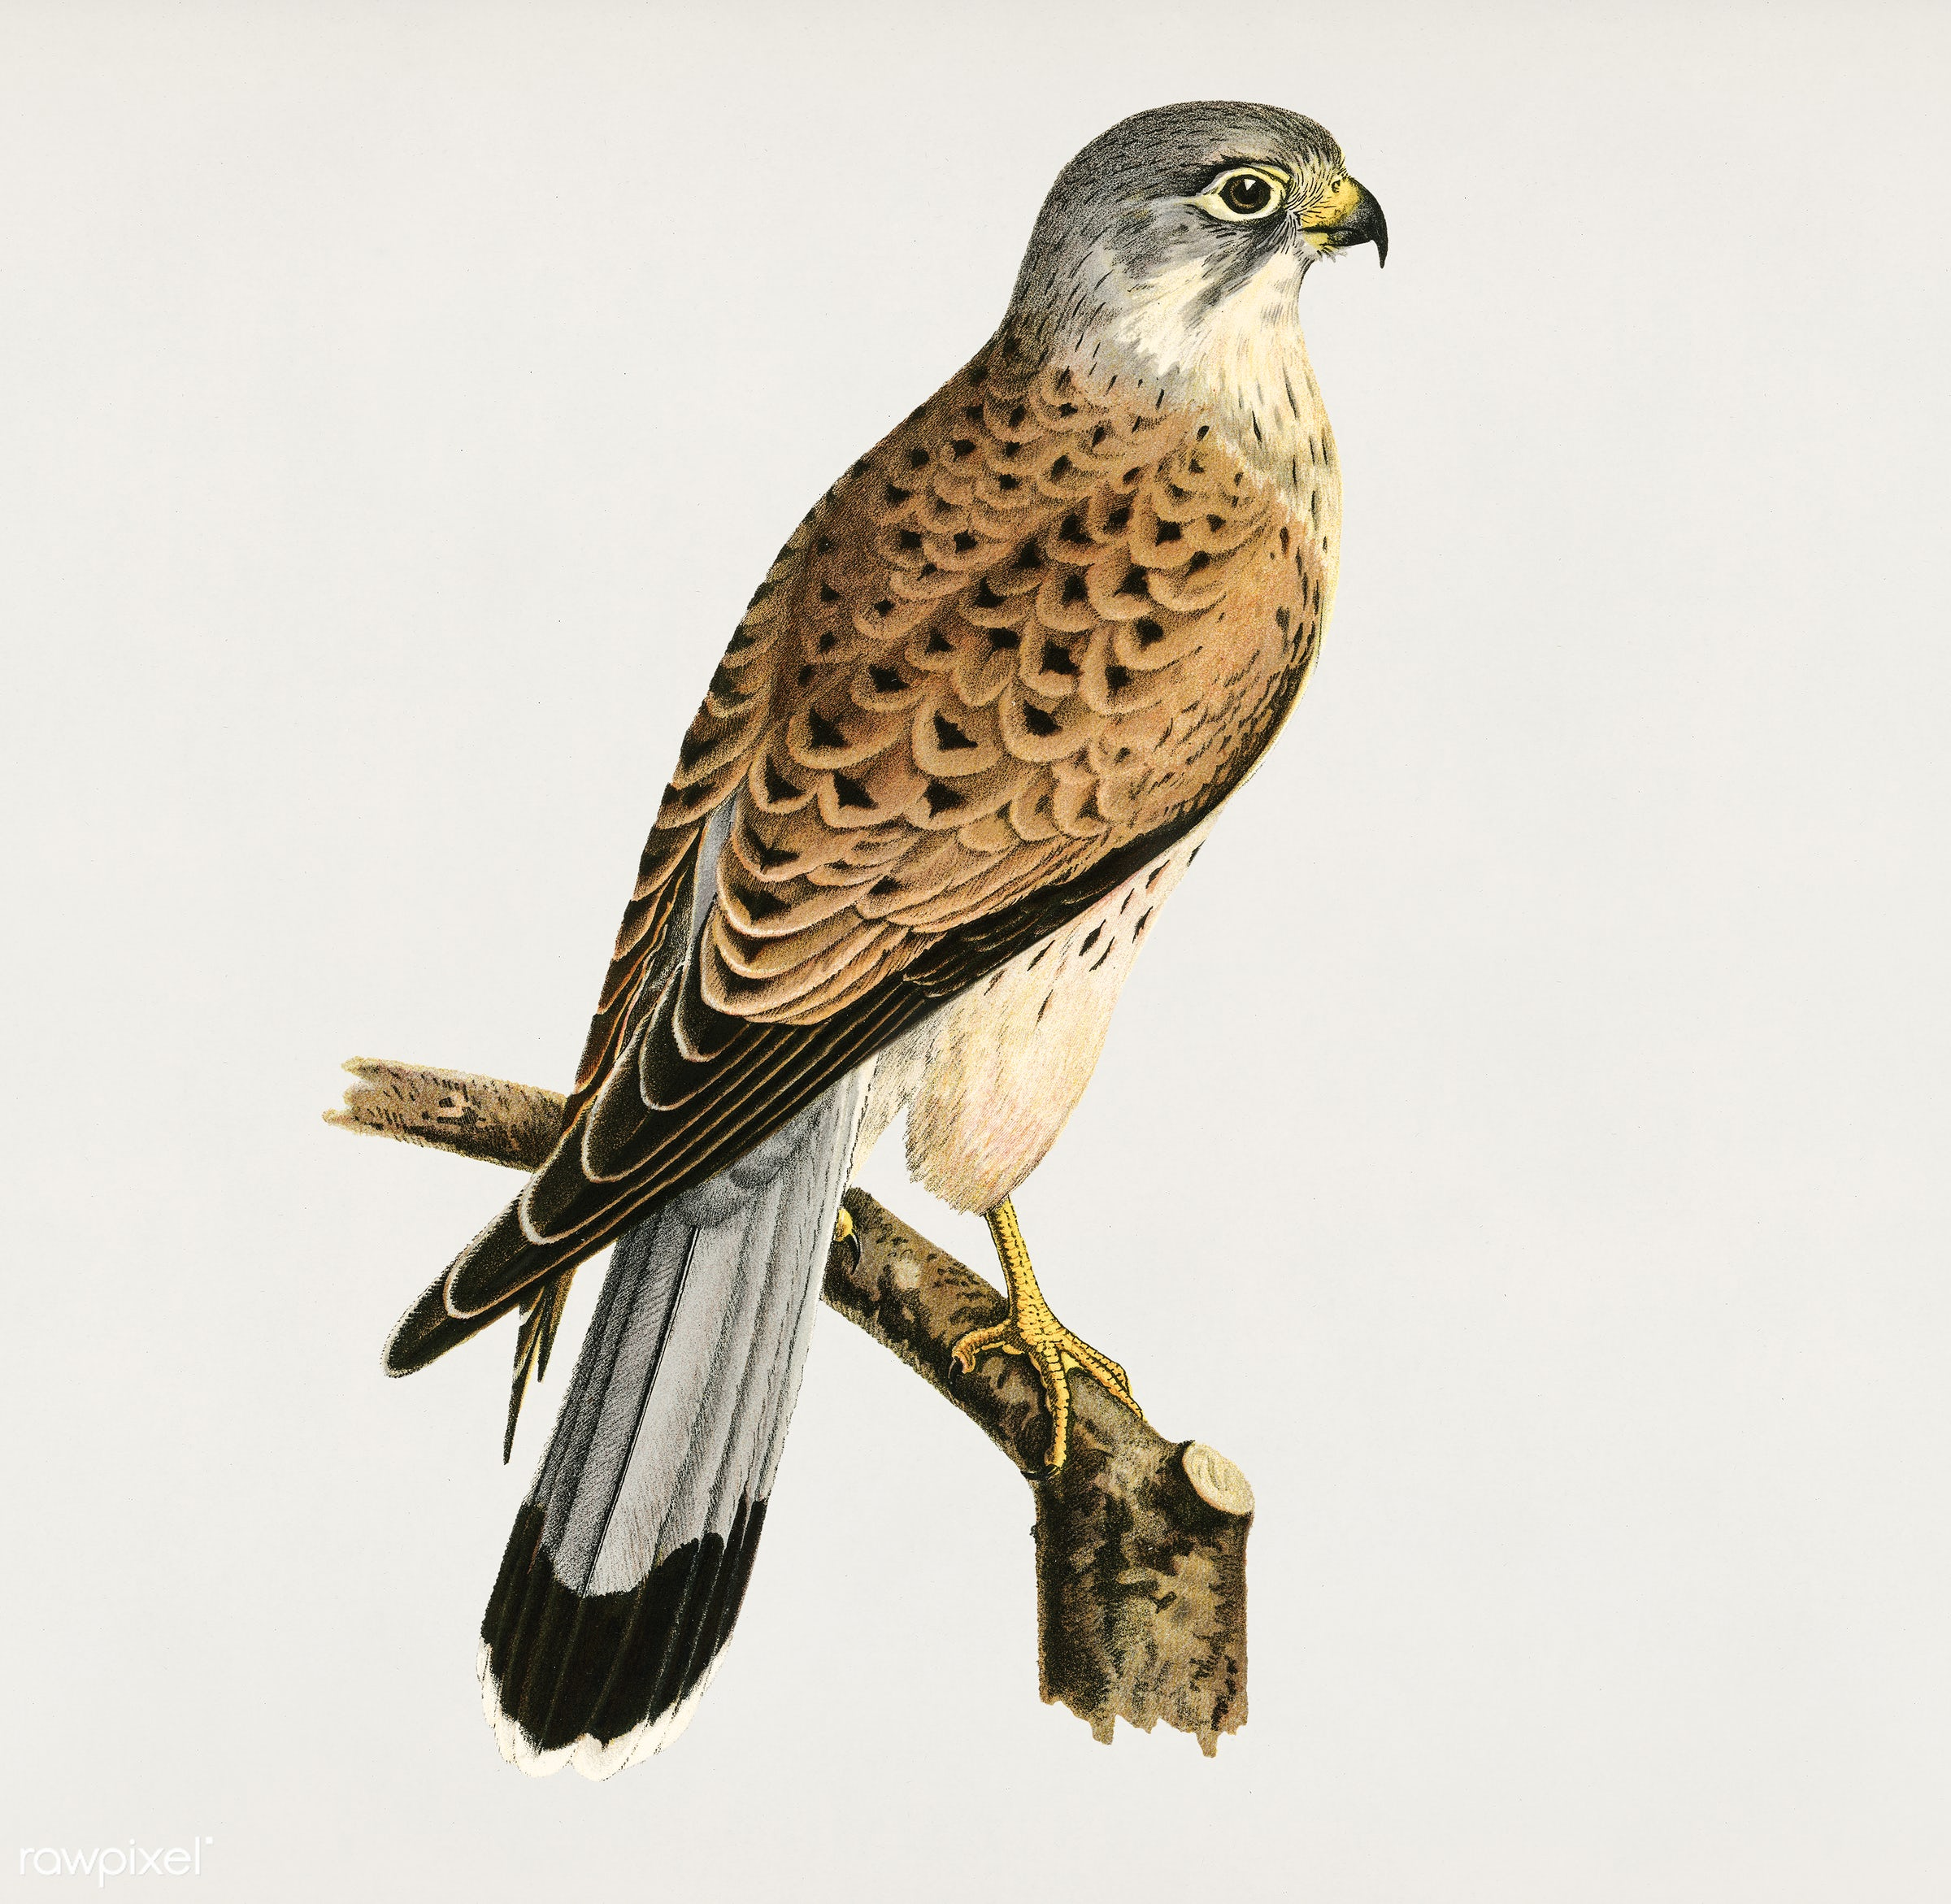 Common Kestrel male (Falco tinnunculus) illustrated by the von Wright brothers. Digitally enhanced from our own 1929 folio...